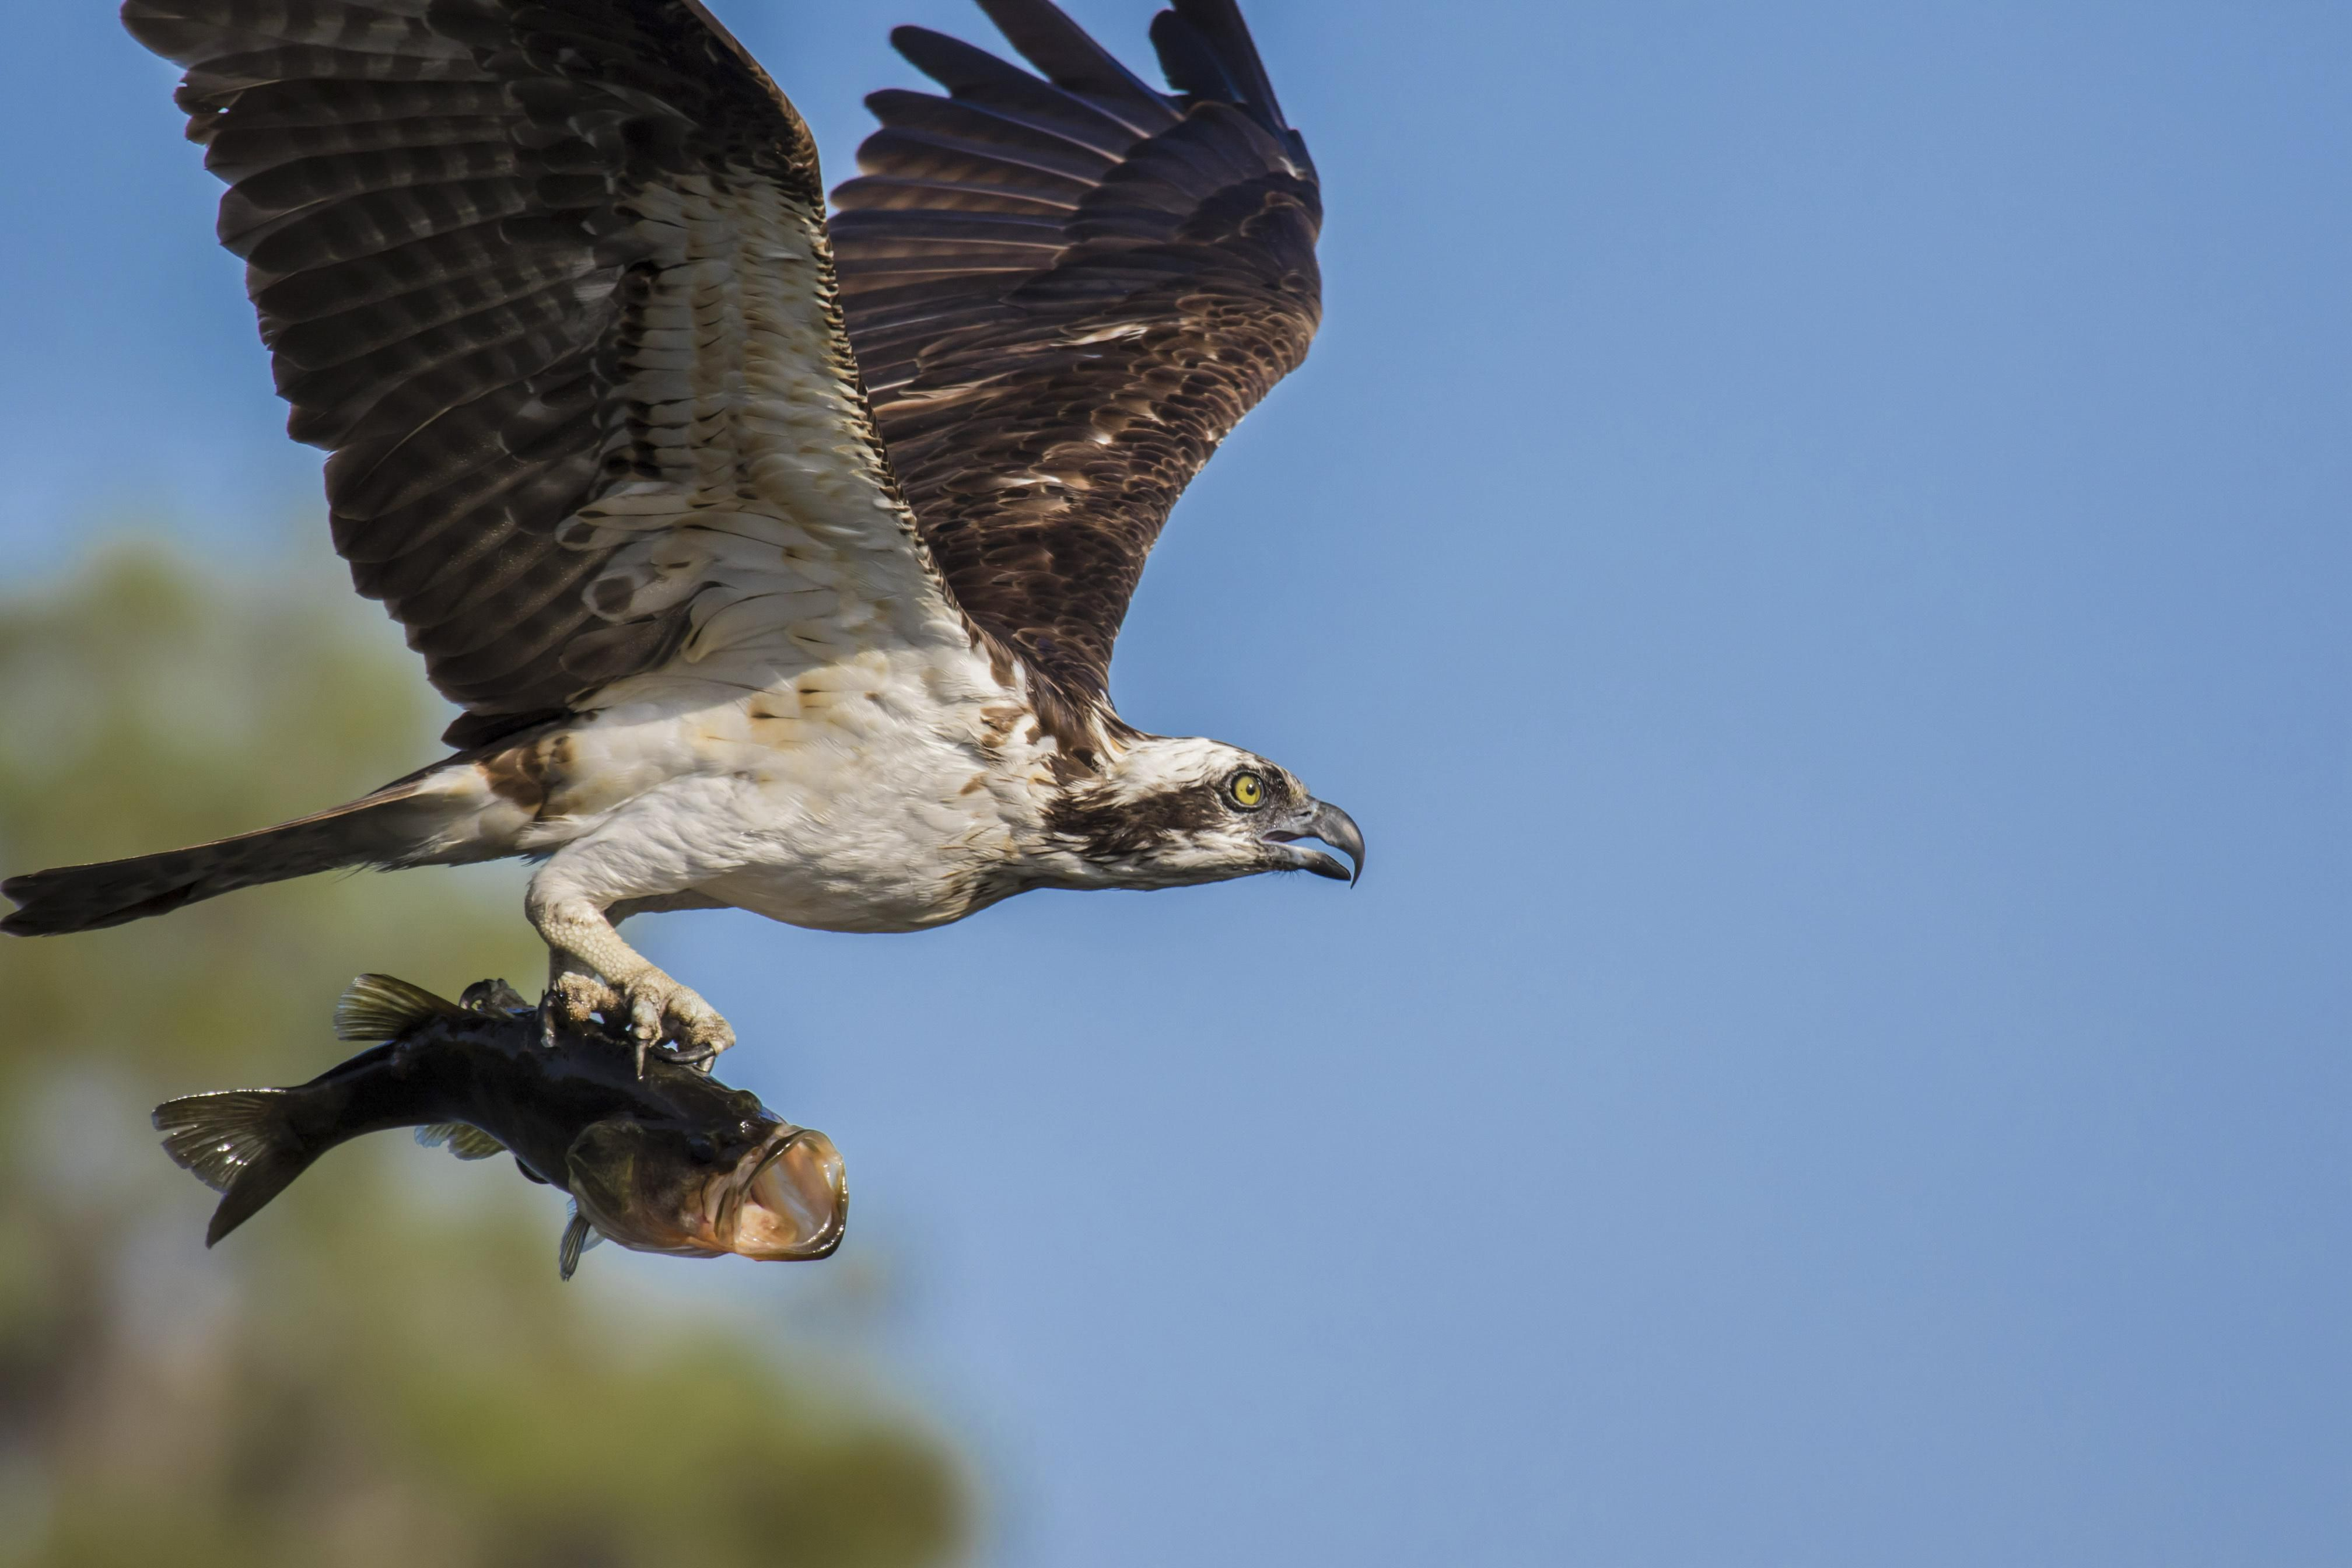 An osprey is flying while holding a fish.